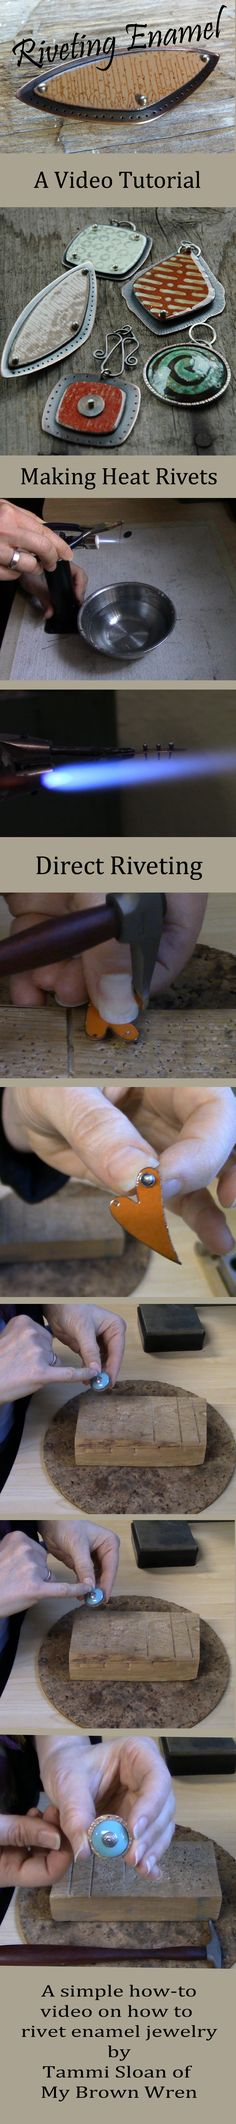 A simple video tutorial on how to safely rivet your enamel jewelry using cold connections and heat rivets